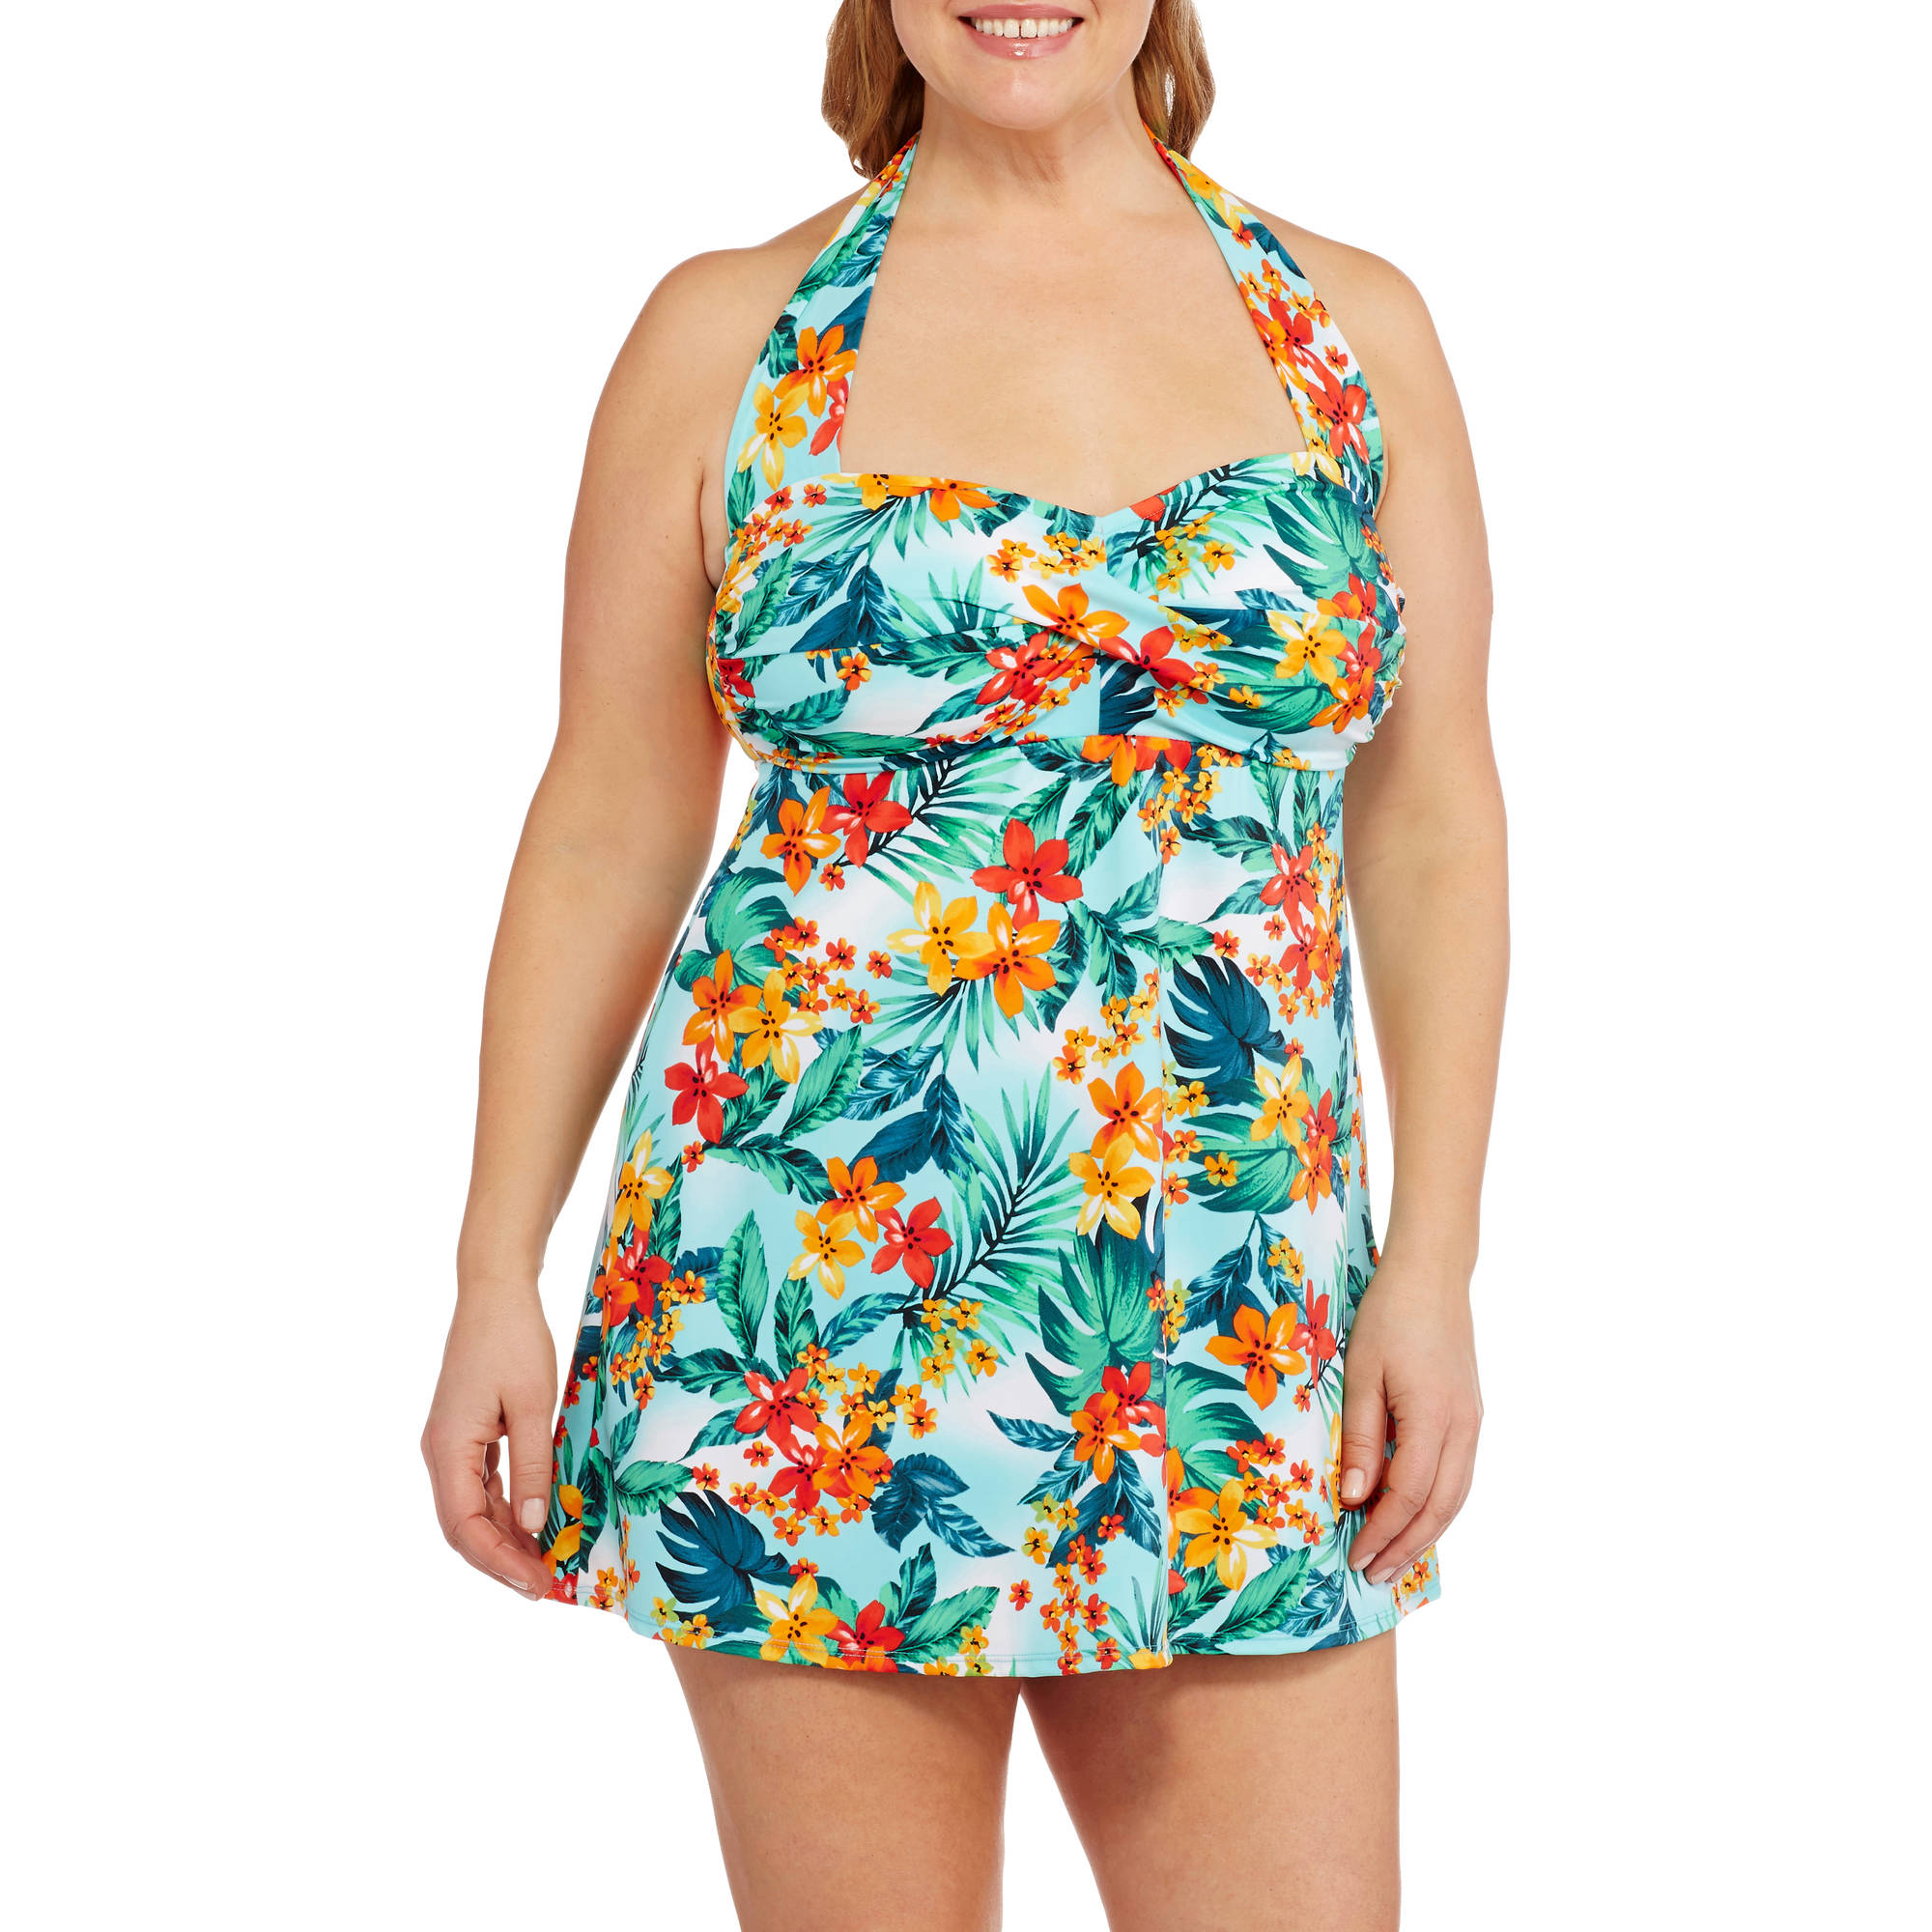 Suddenly Slim By Catalina Women's Plus-Size Retro Shirred Halter Slimming Swimdress